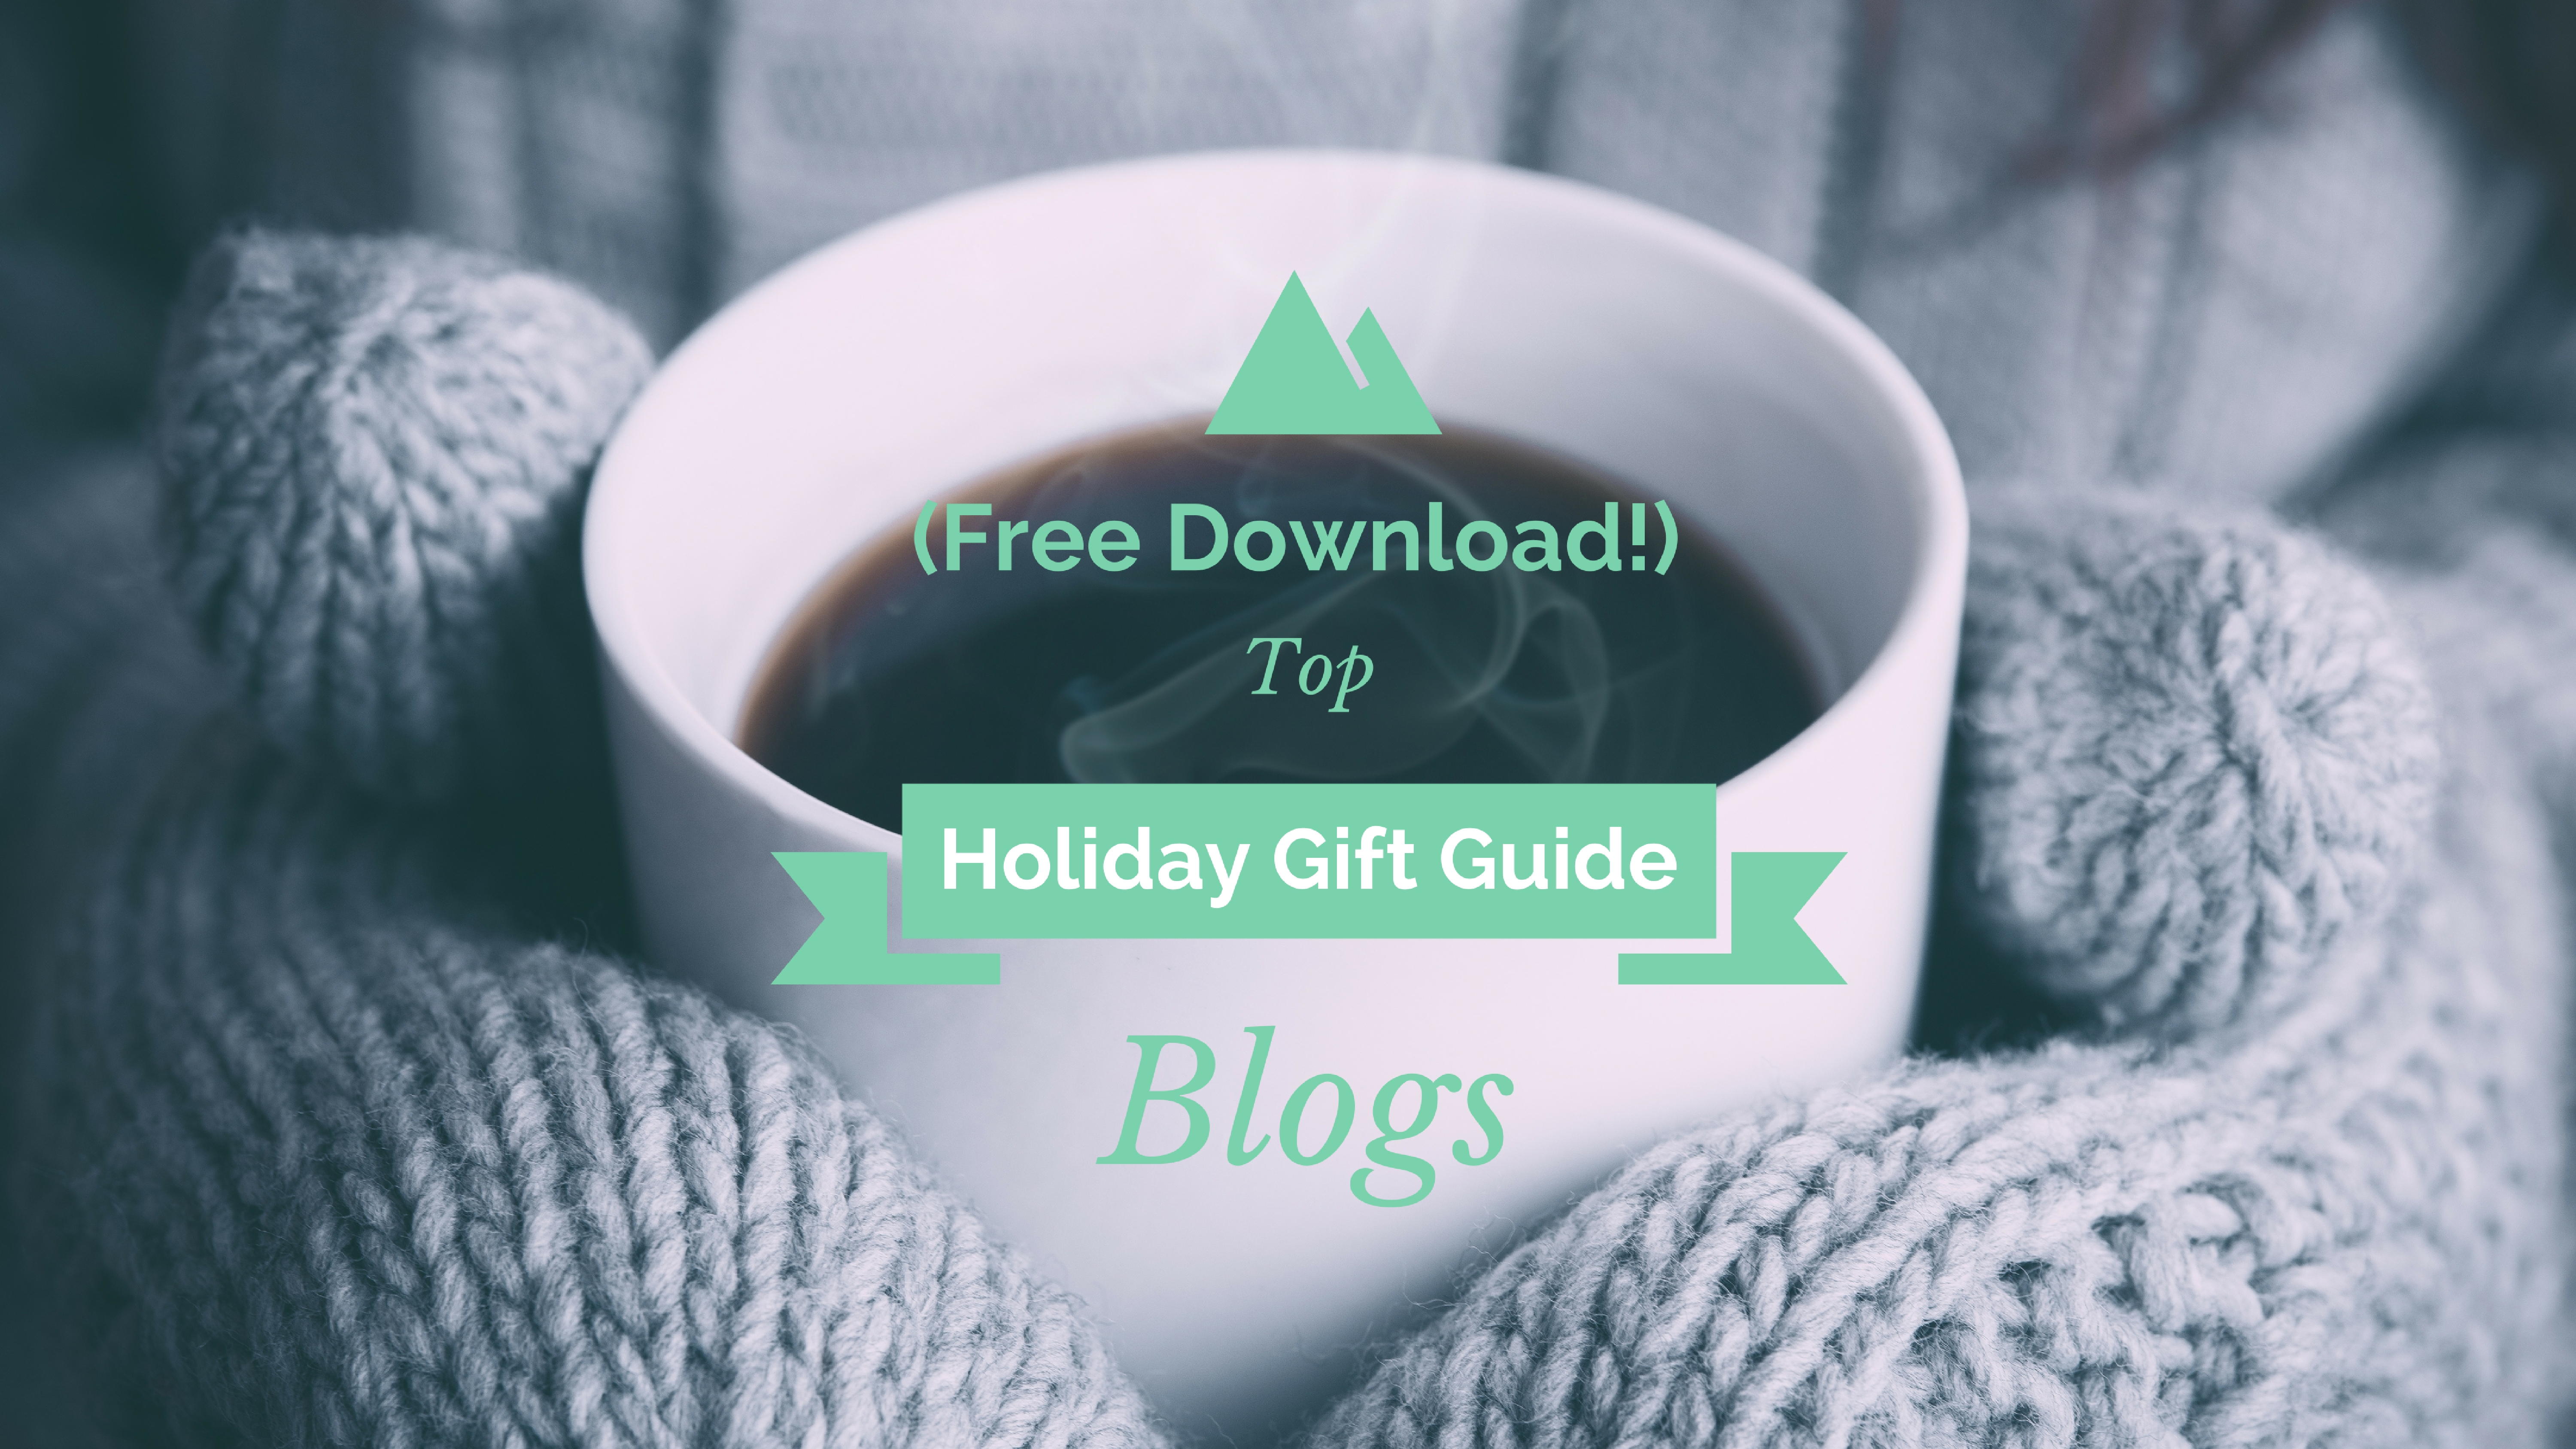 (Free Download!) List Of Holiday Gift Guide Blogs!